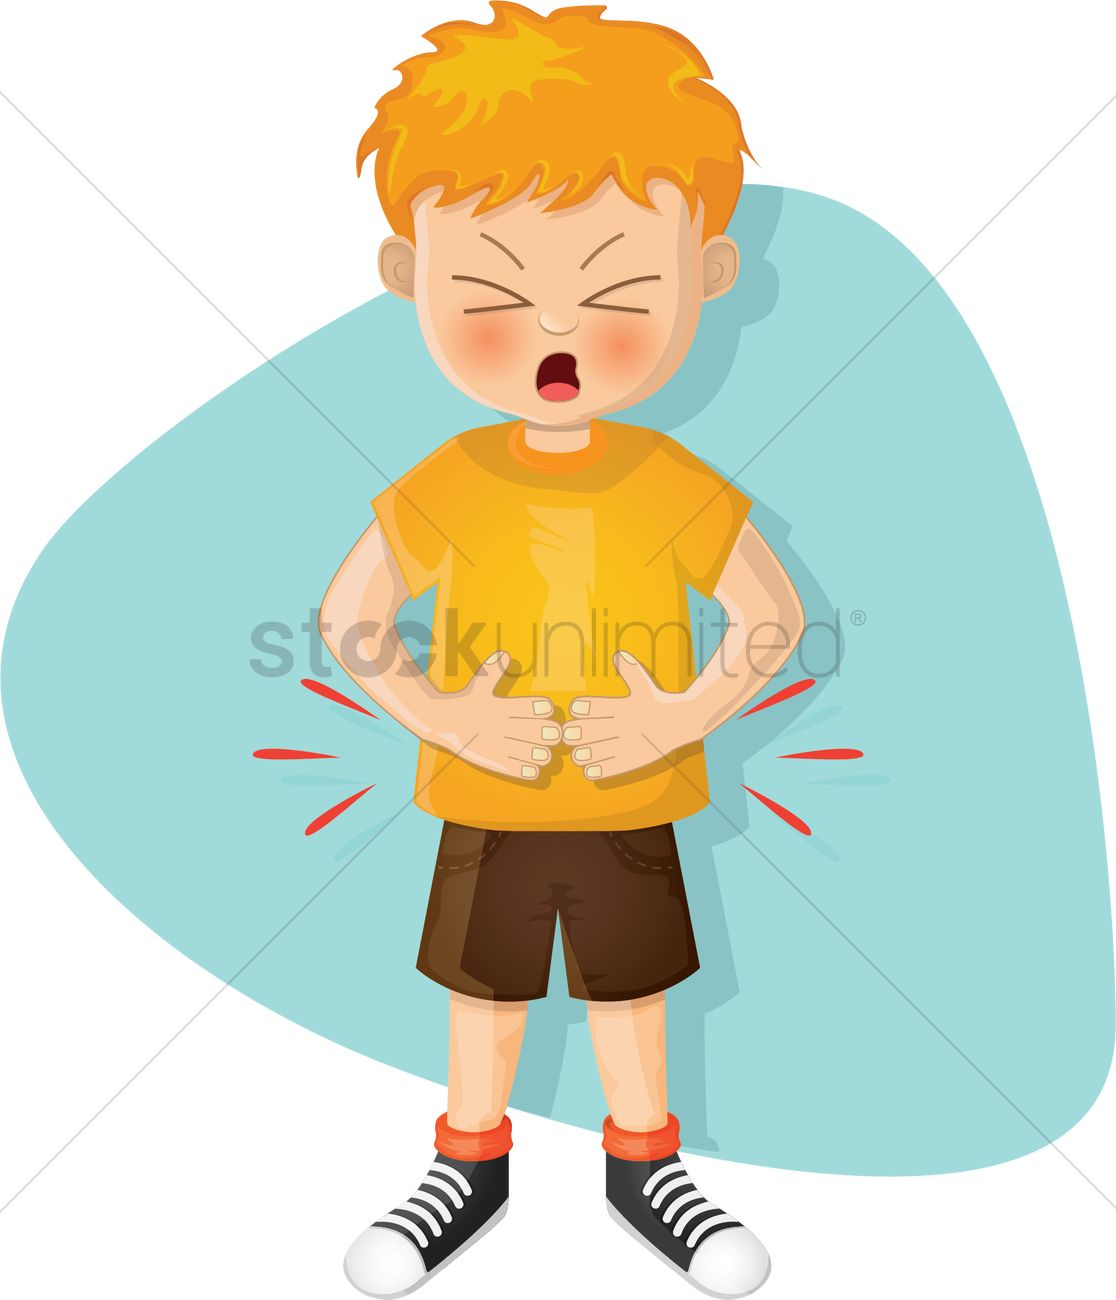 Boy With Stomachache Vector Image 2021130 Stockunlimited